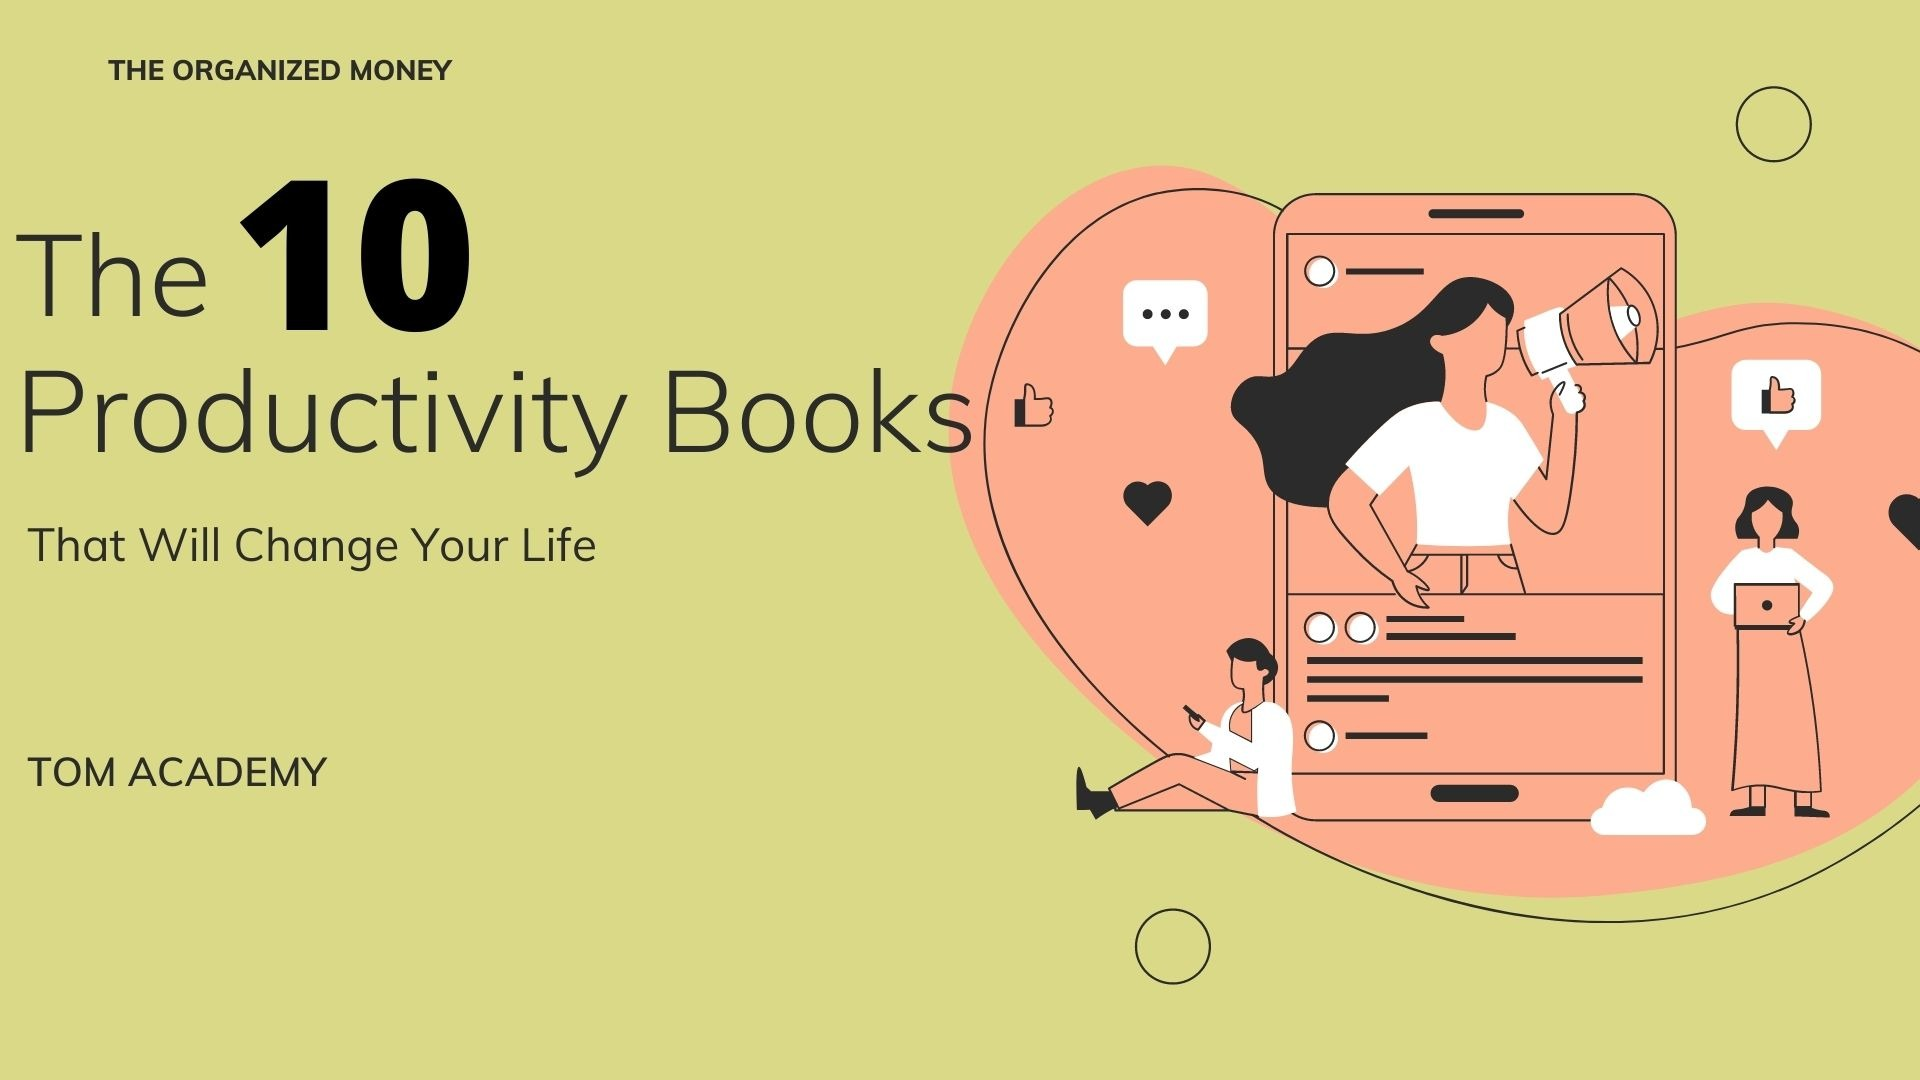 The 10 Productivity Books That Will Change Your Life